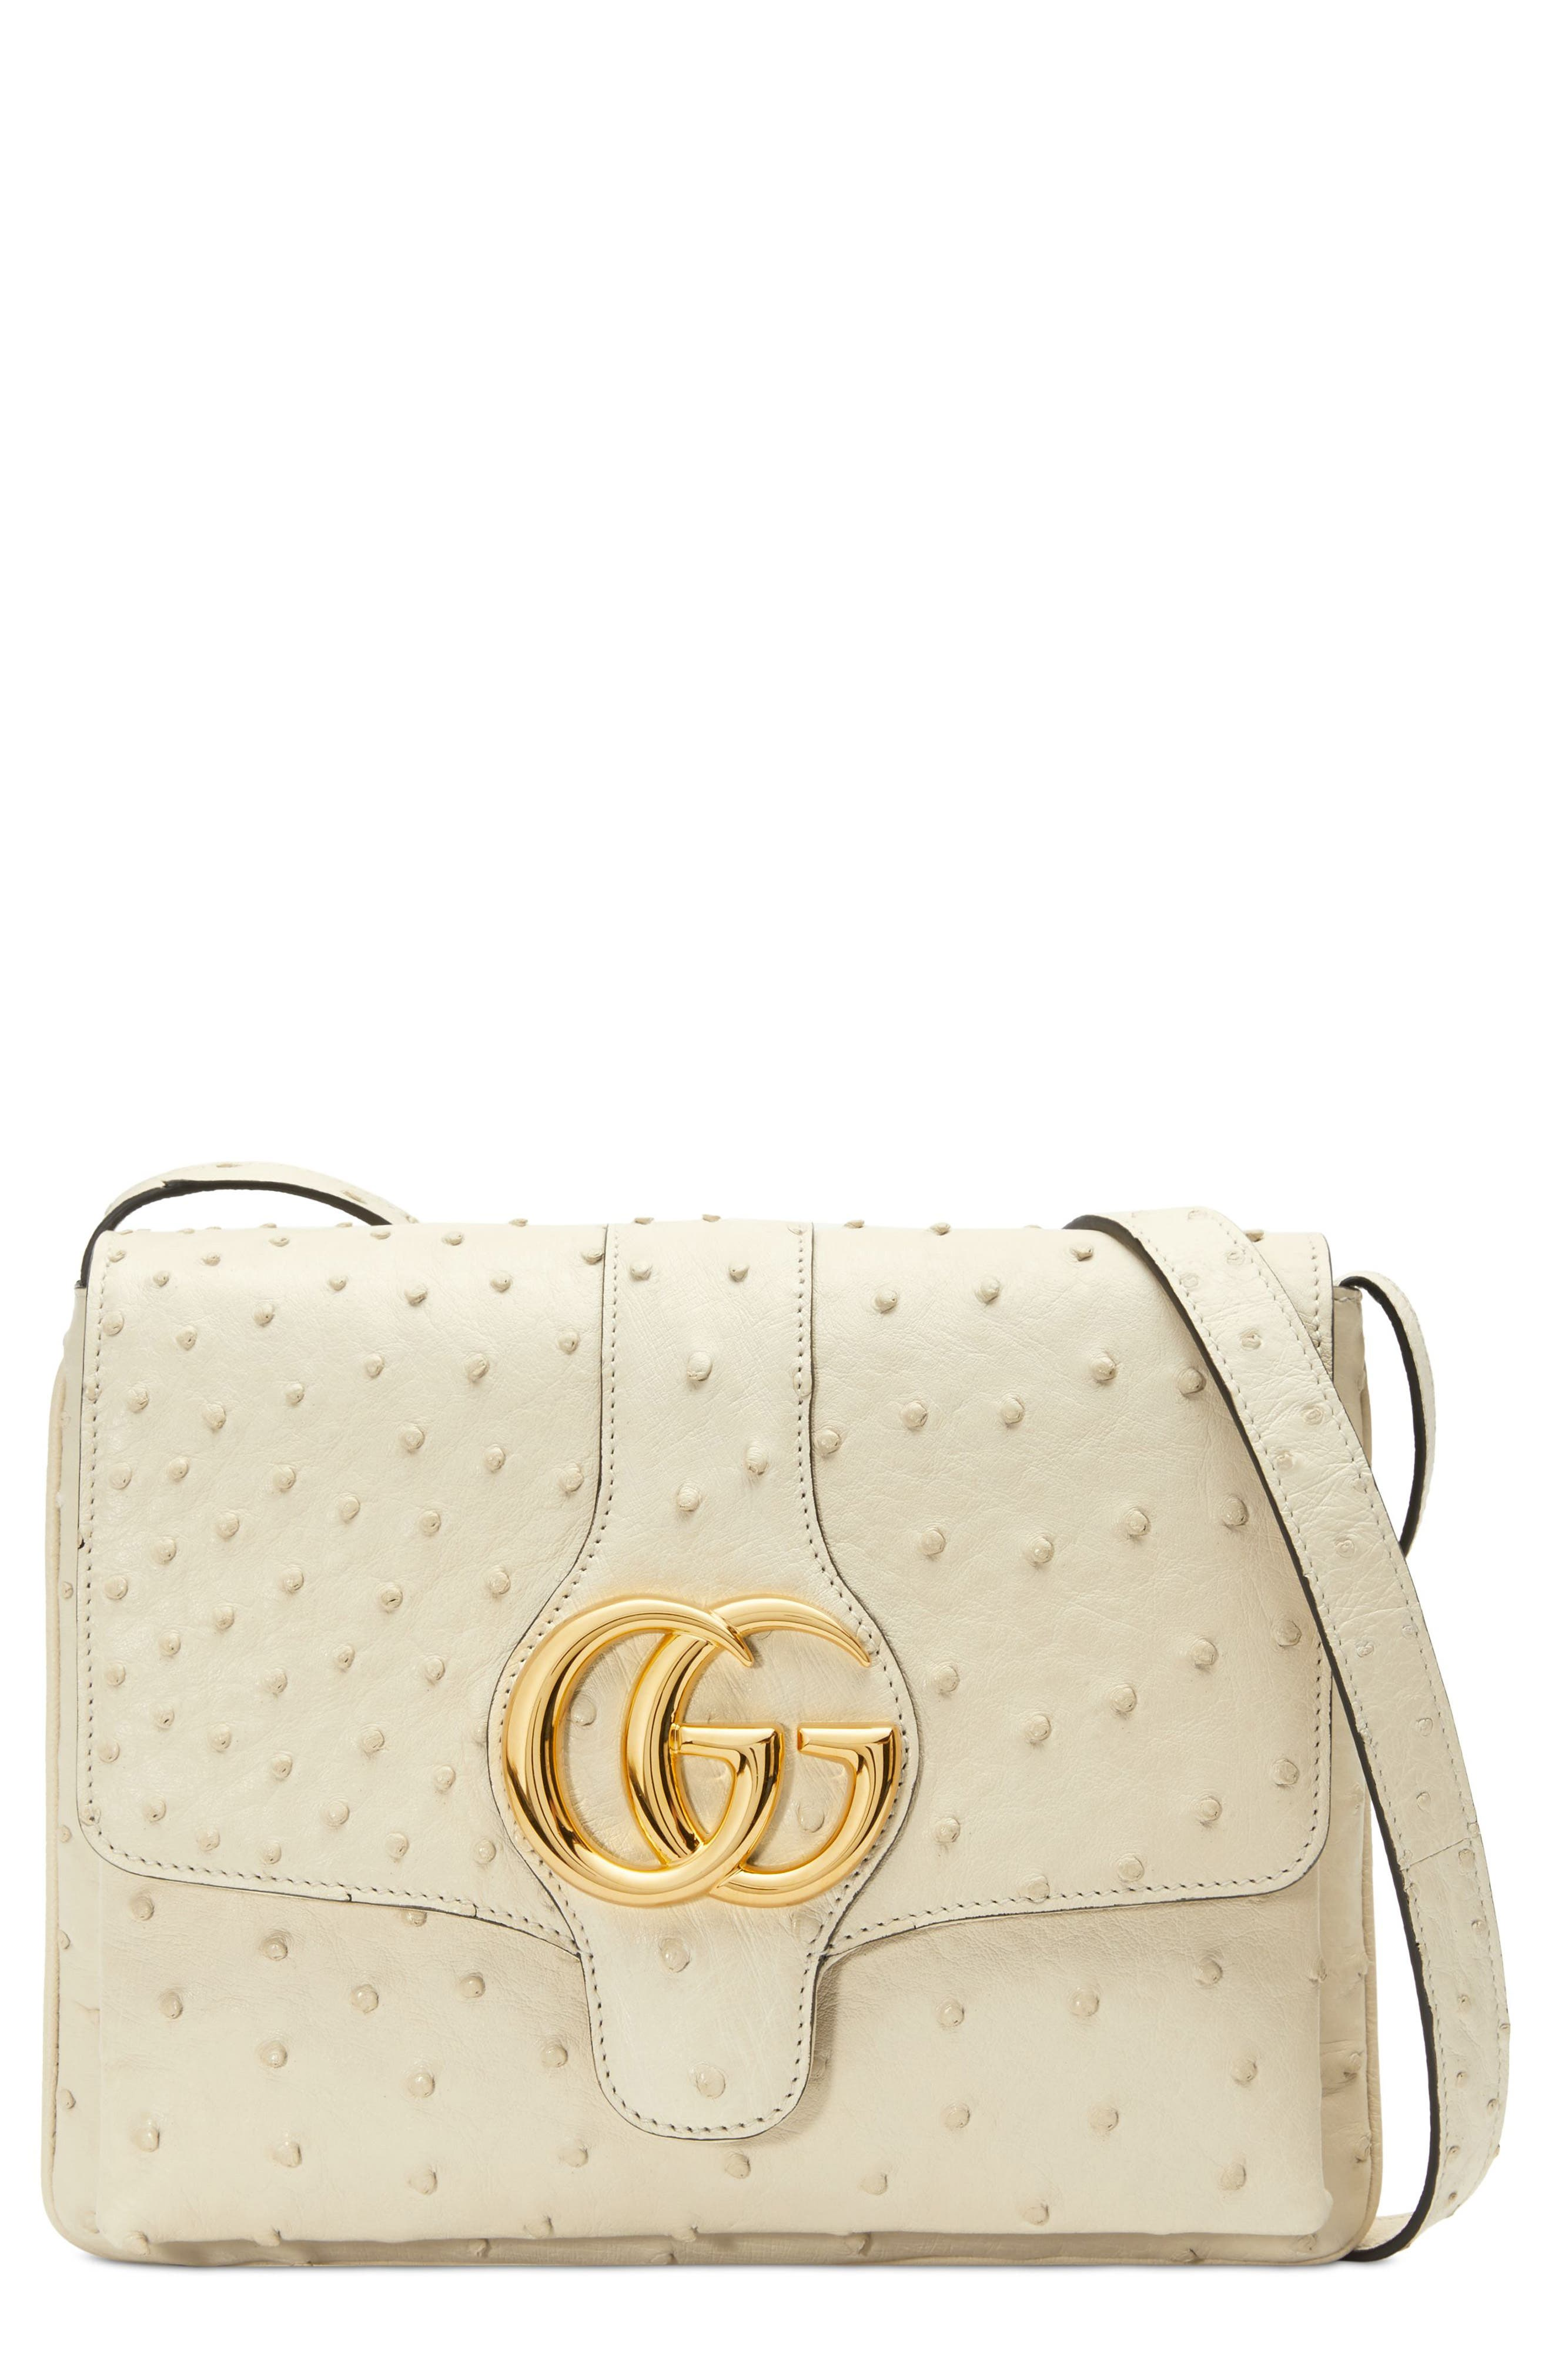 Medium Arli Ostrich Shoulder Bag,                         Main,                         color, IVORY